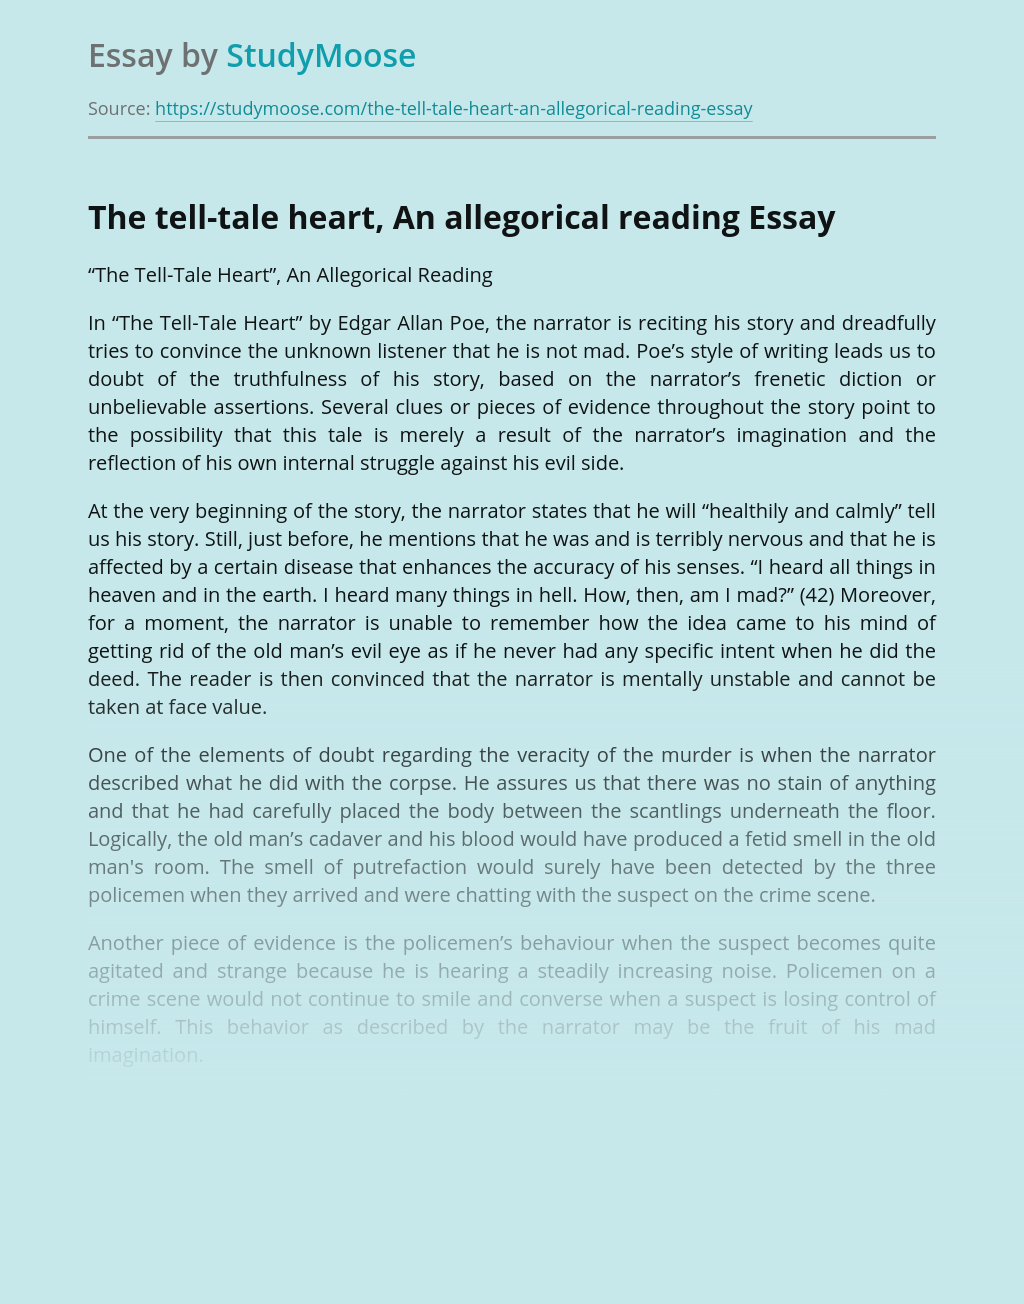 The tell-tale heart, An allegorical reading